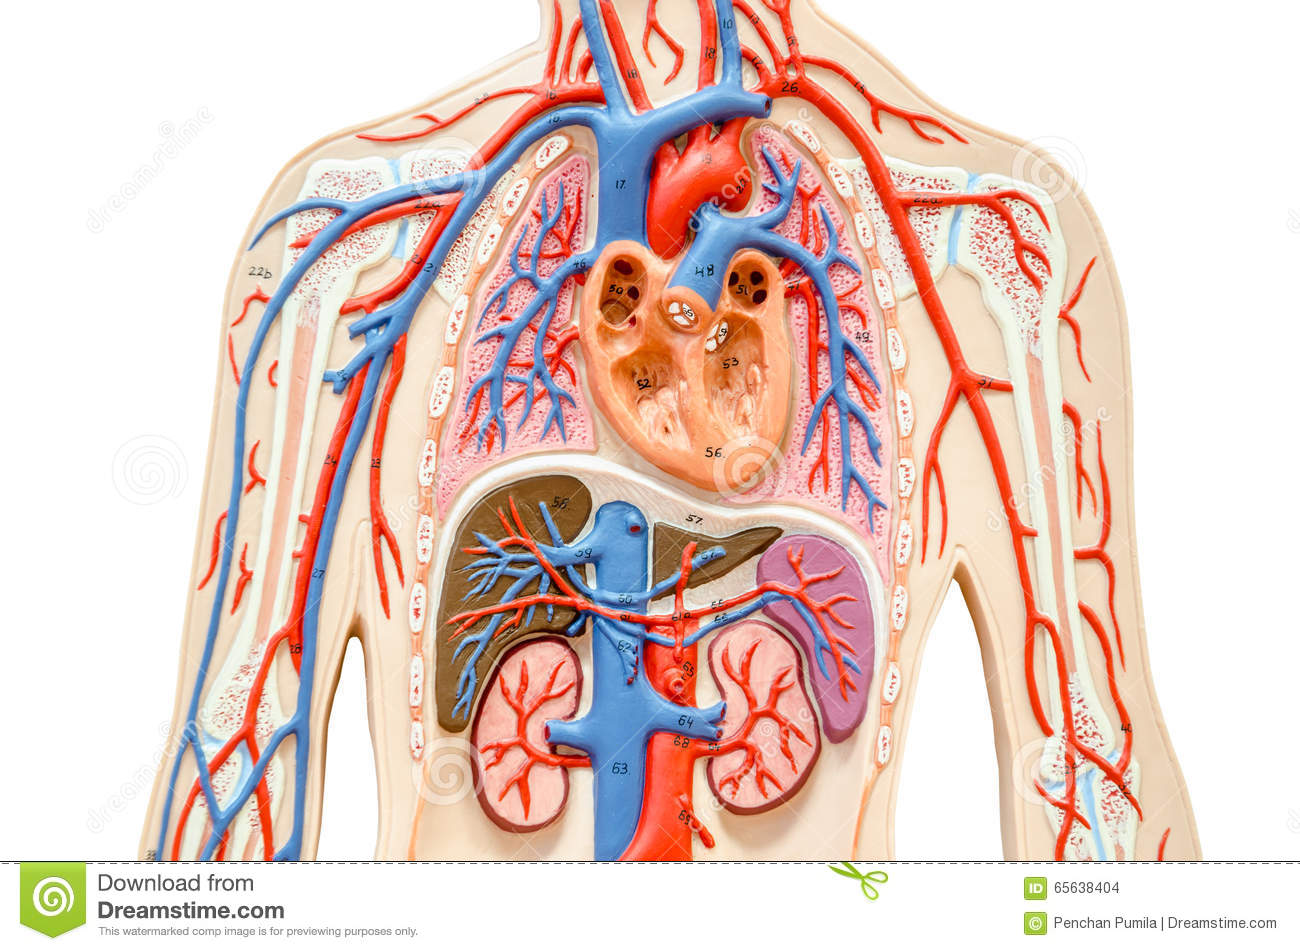 Organ system furthermore Respiratory System On Torso Model Labeled as well Anatomical Regions together with Muscle Diagram further Heart Anatomy 15347719. on human circulatory system organs